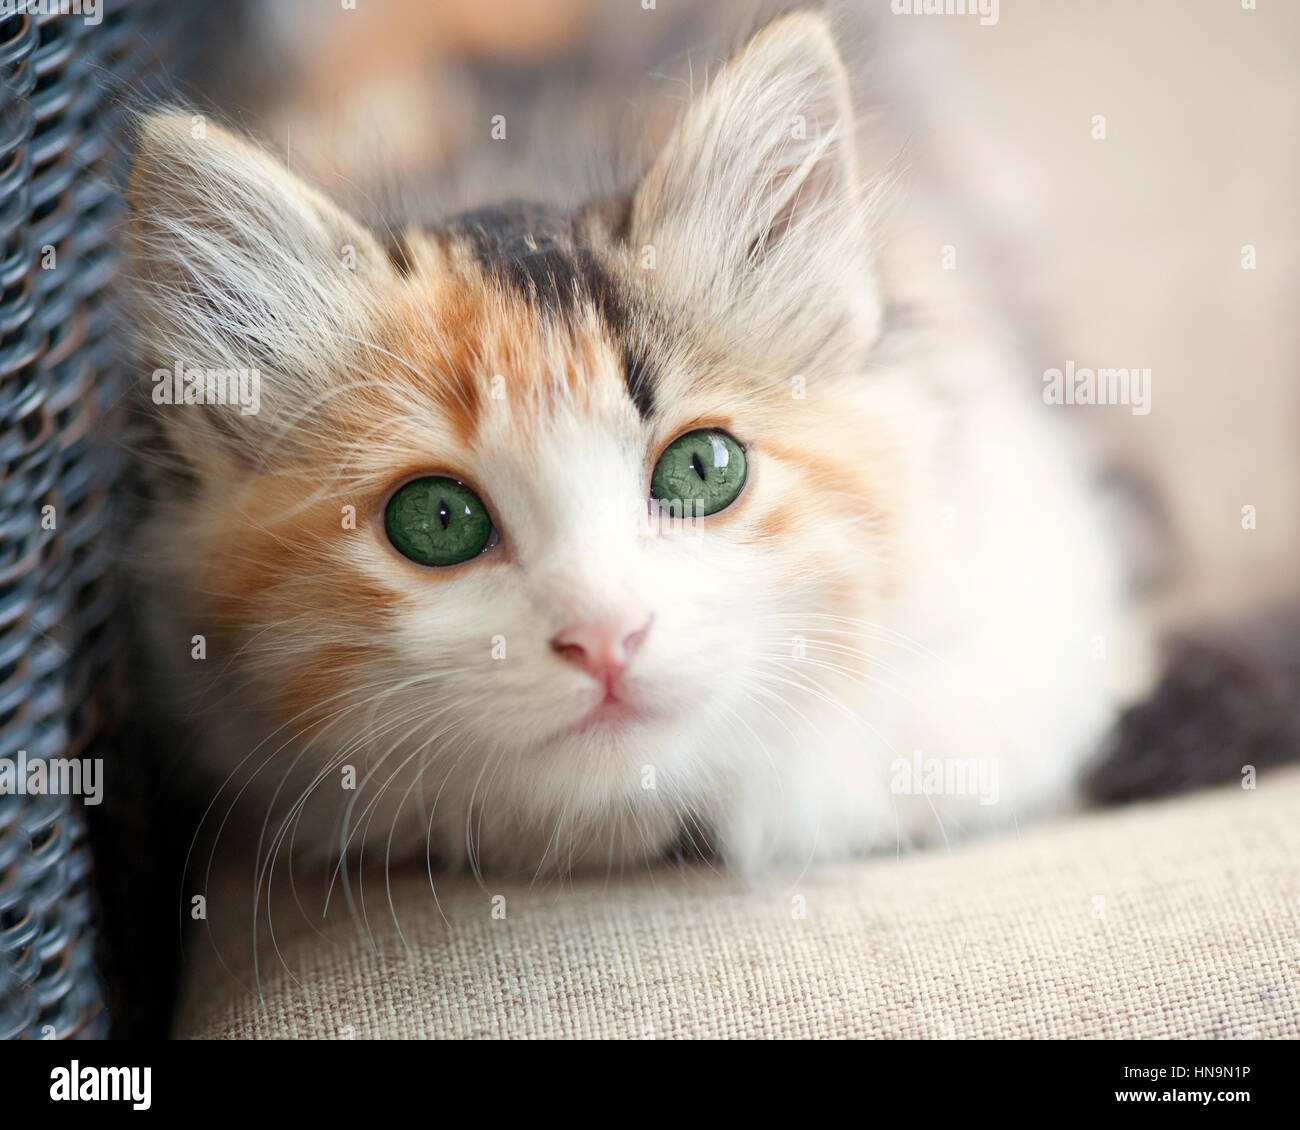 Portrait of kitten - Stock Image